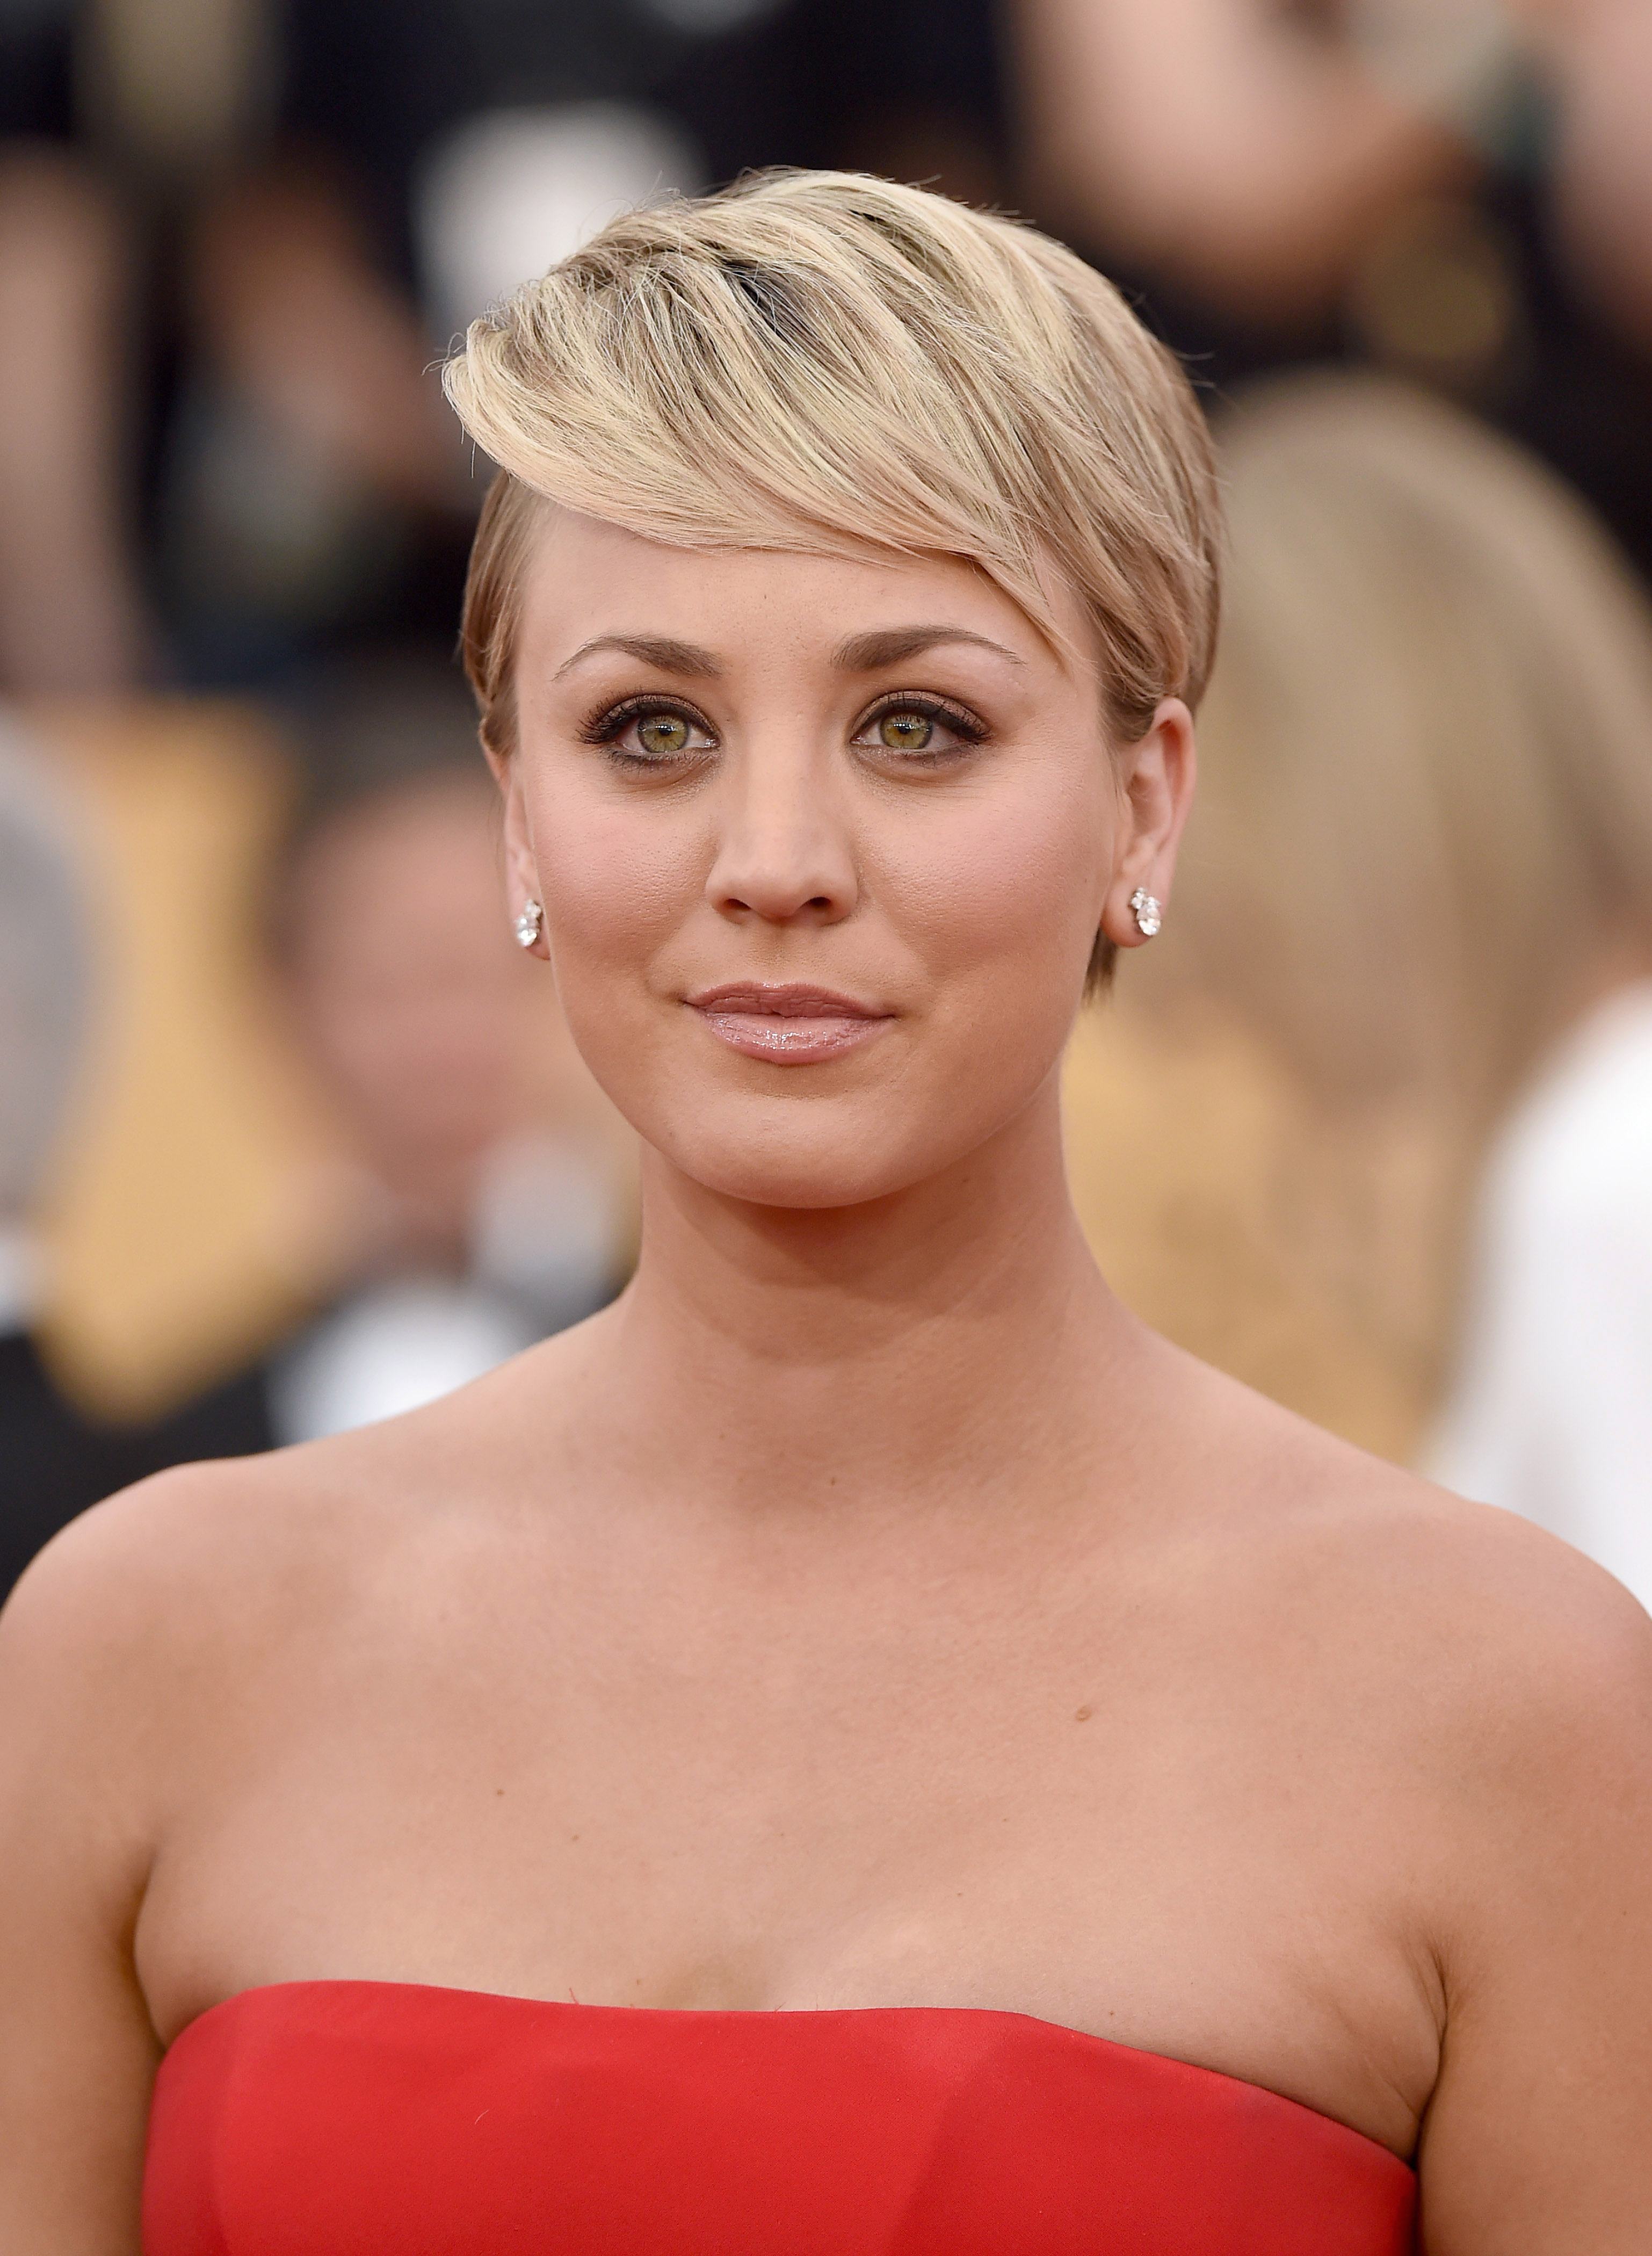 Tremendous 34 Pixie Hairstyles And Cuts Celebrities With Pixies Short Hairstyles For Black Women Fulllsitofus